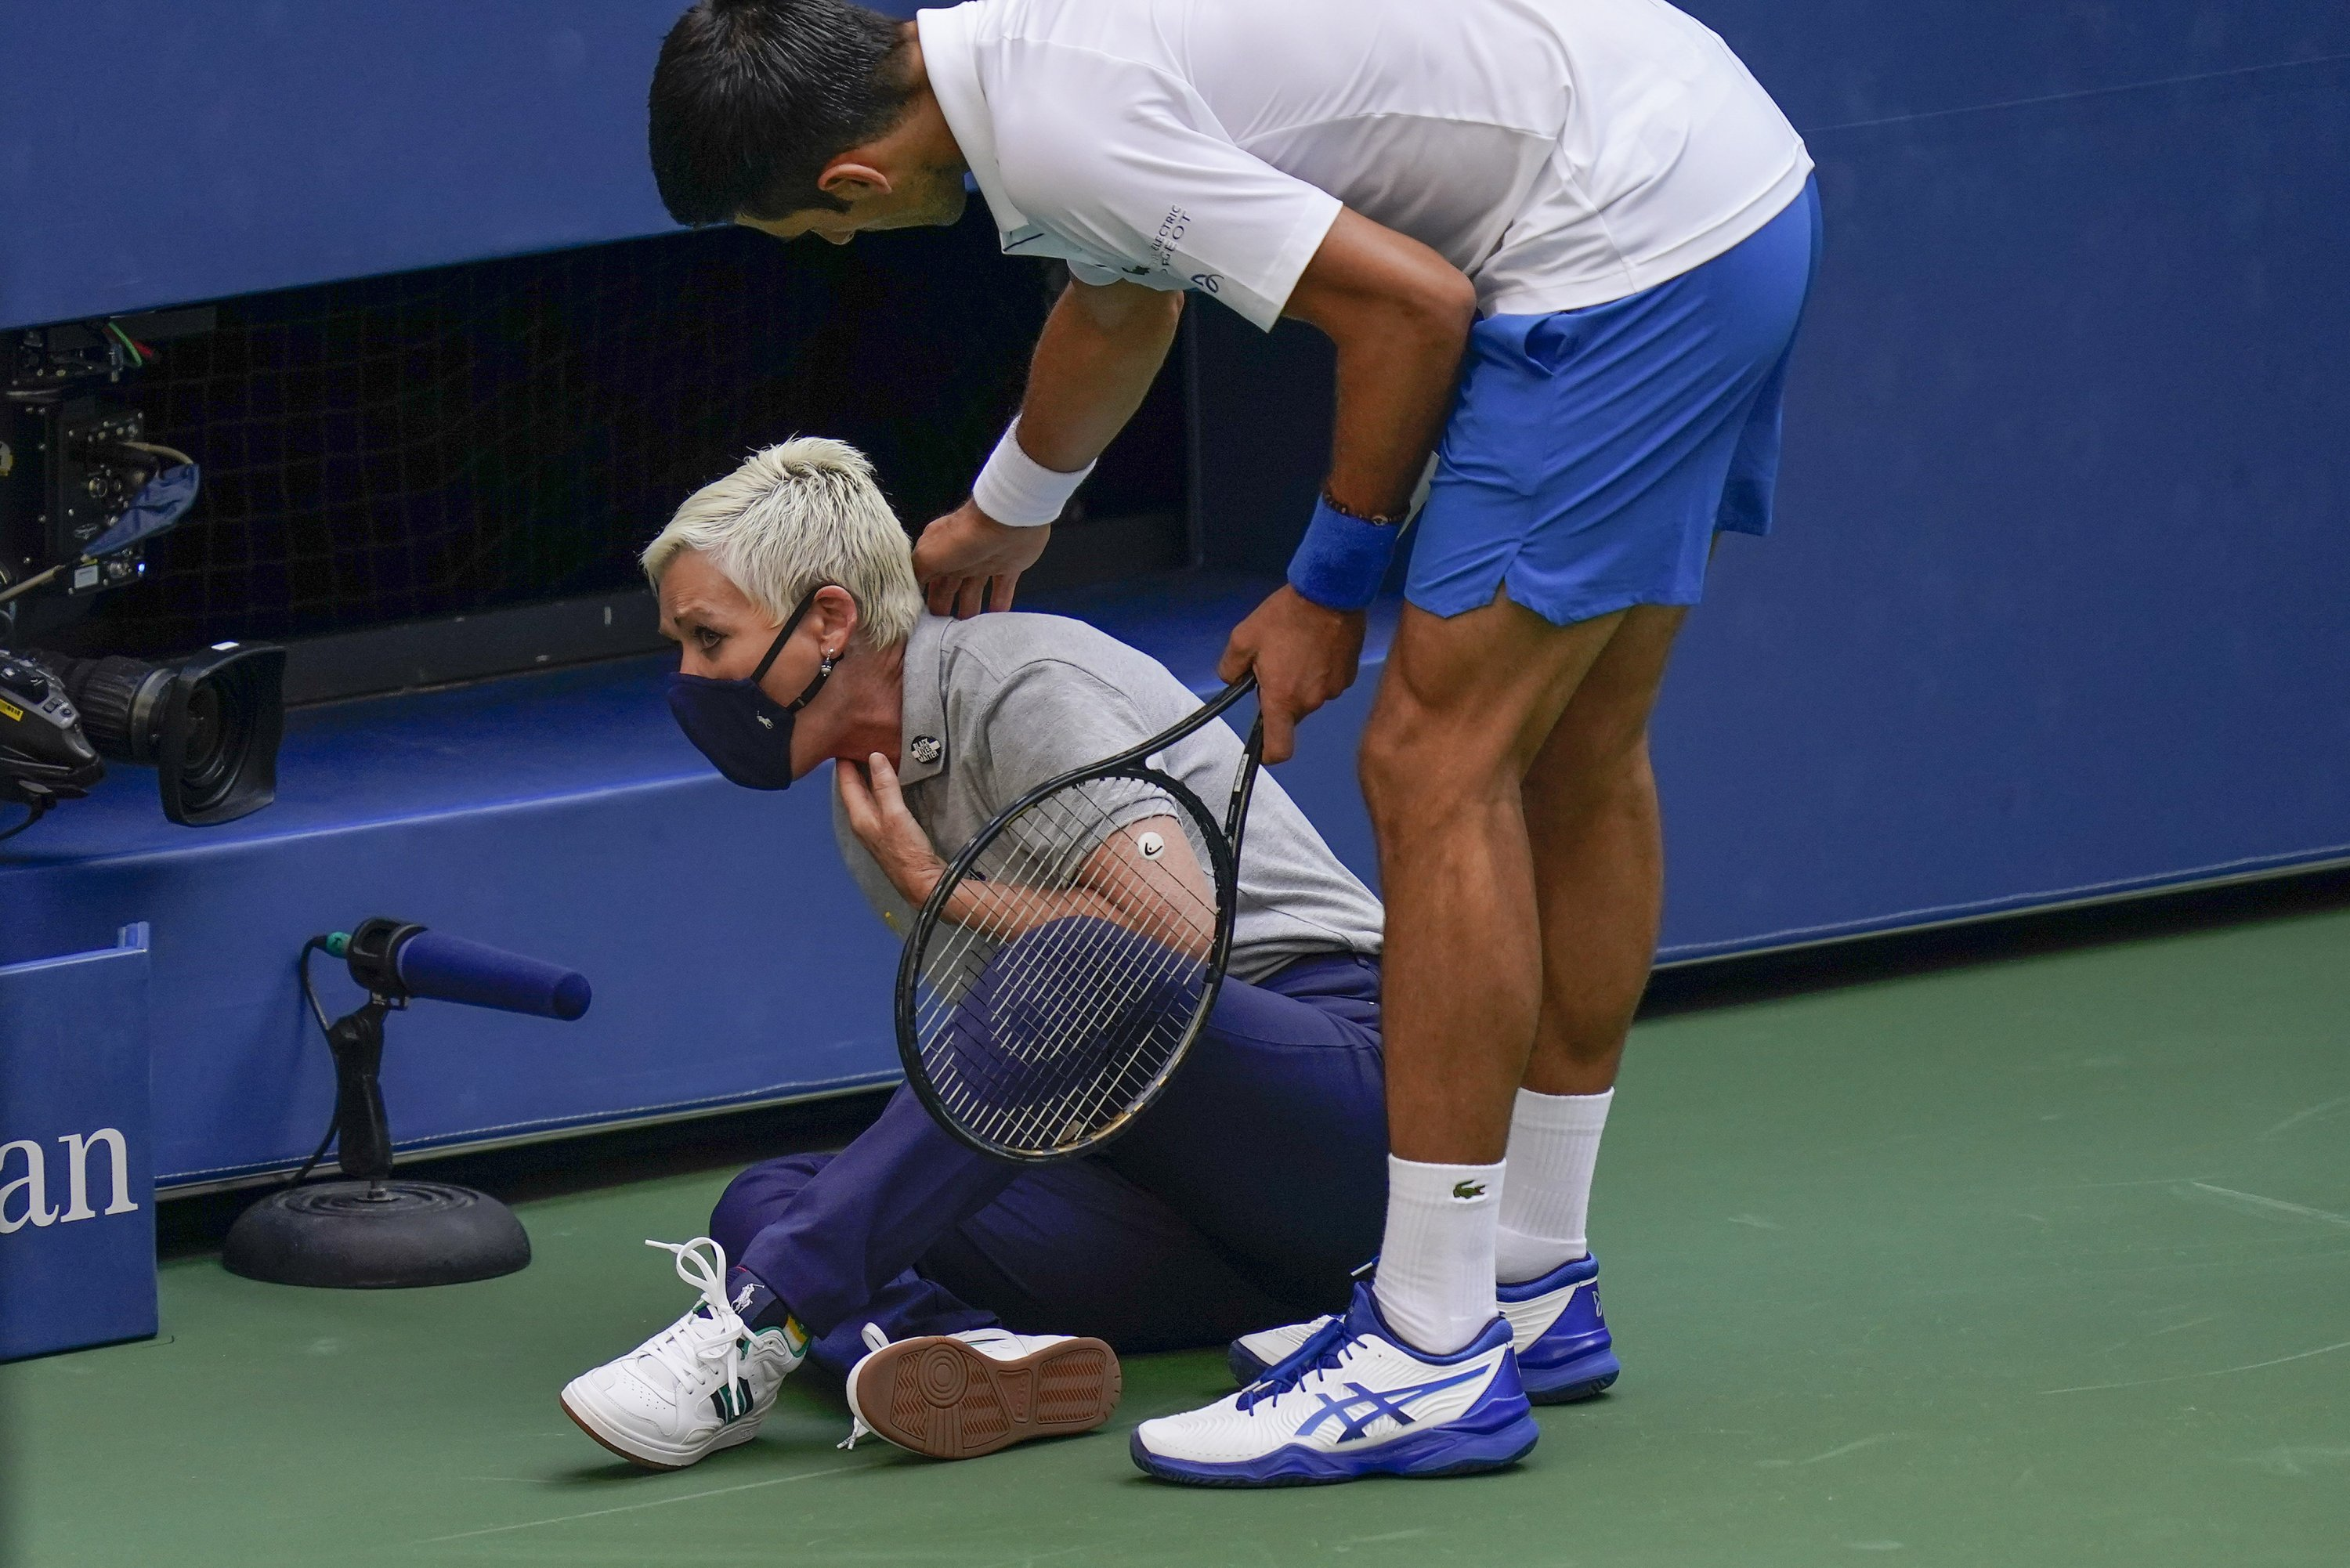 Djokovic Disqualified From Us Open After Hitting Line Judge With Ball Daily Sabah